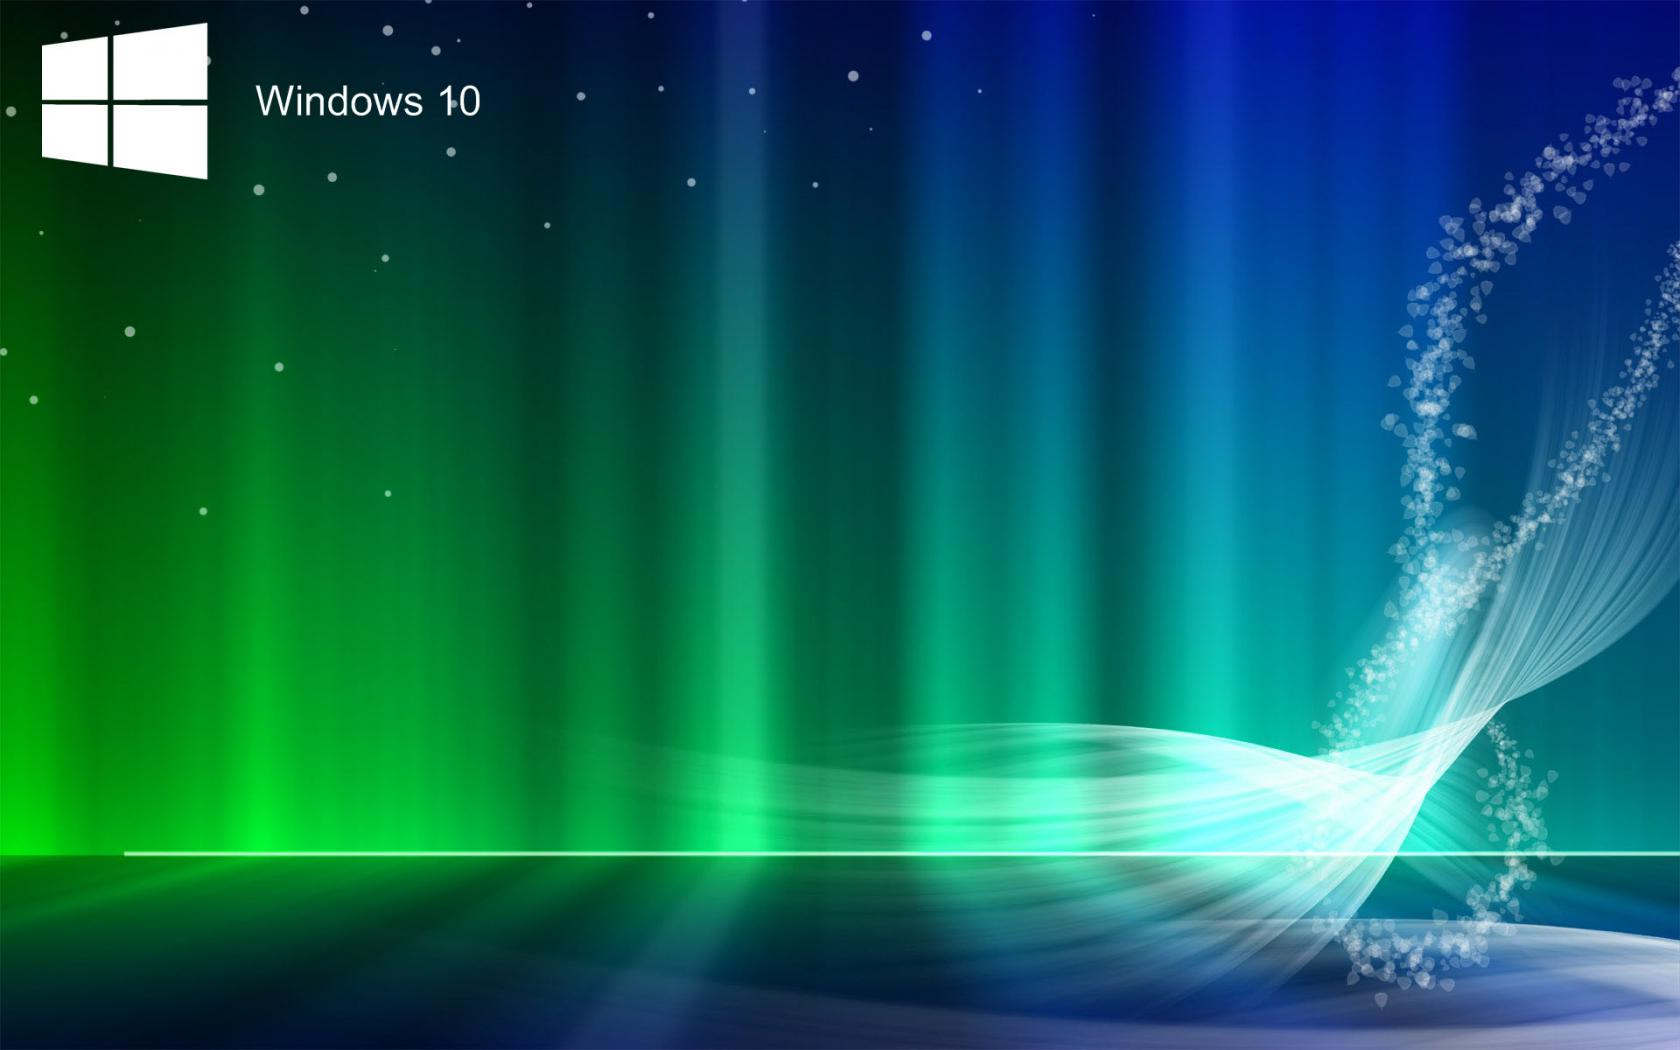 Windows 10 Wallpaper Download for Laptop Backgrounds   HD Wallpapers ...